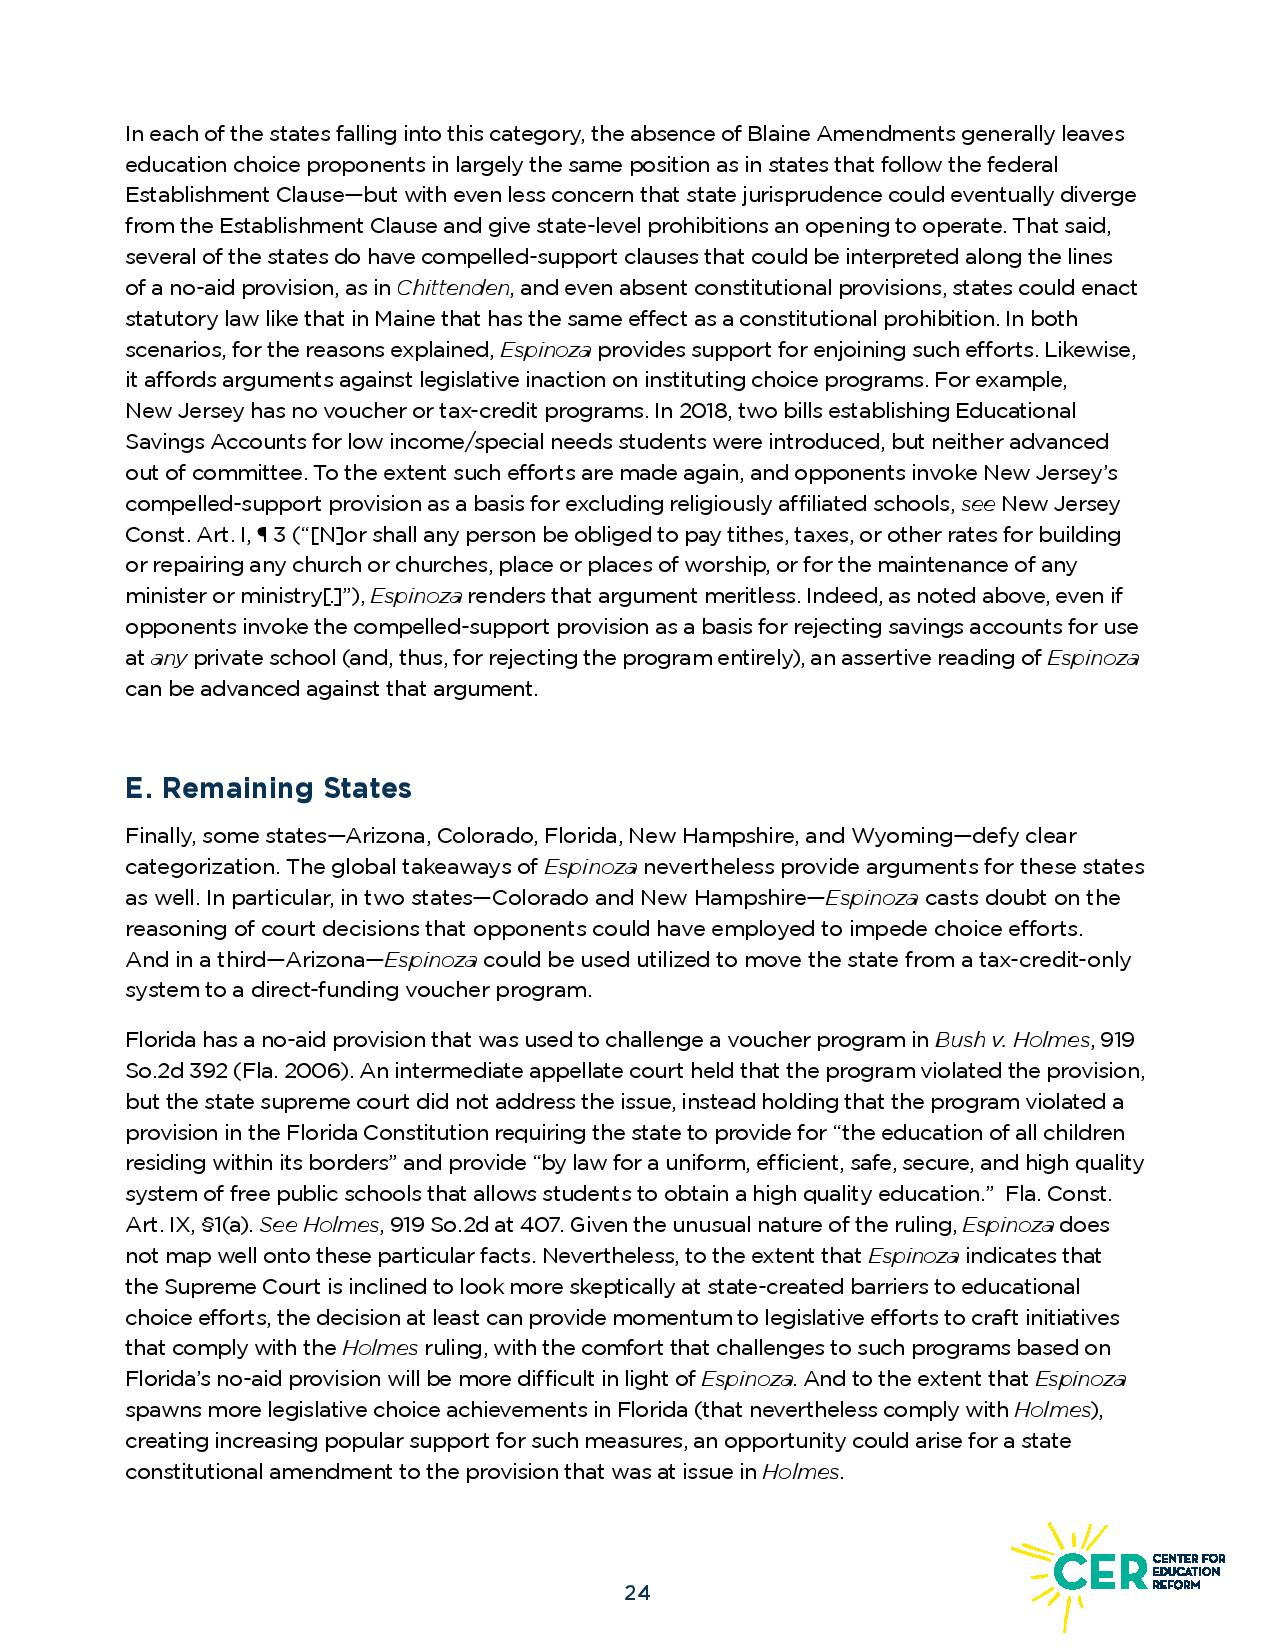 CER_Whitepaper_Blaine-page-024